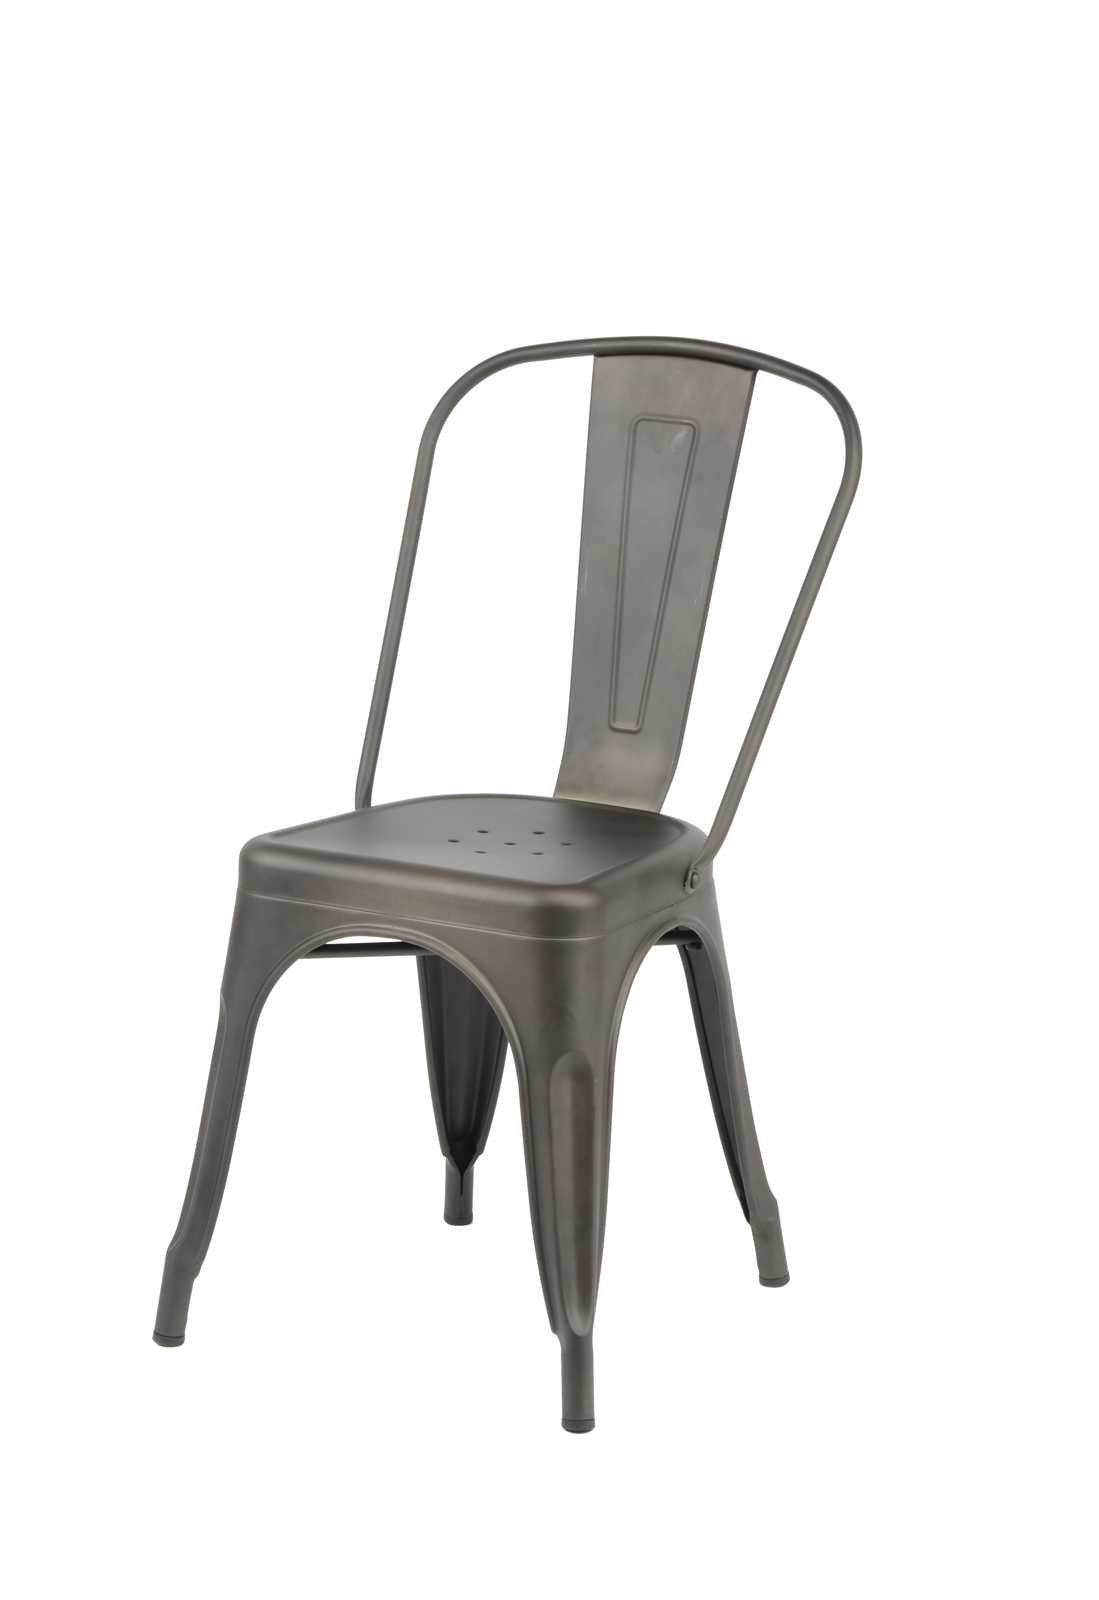 chaise bistrot metal grise ralf lot 2 chaises pier import